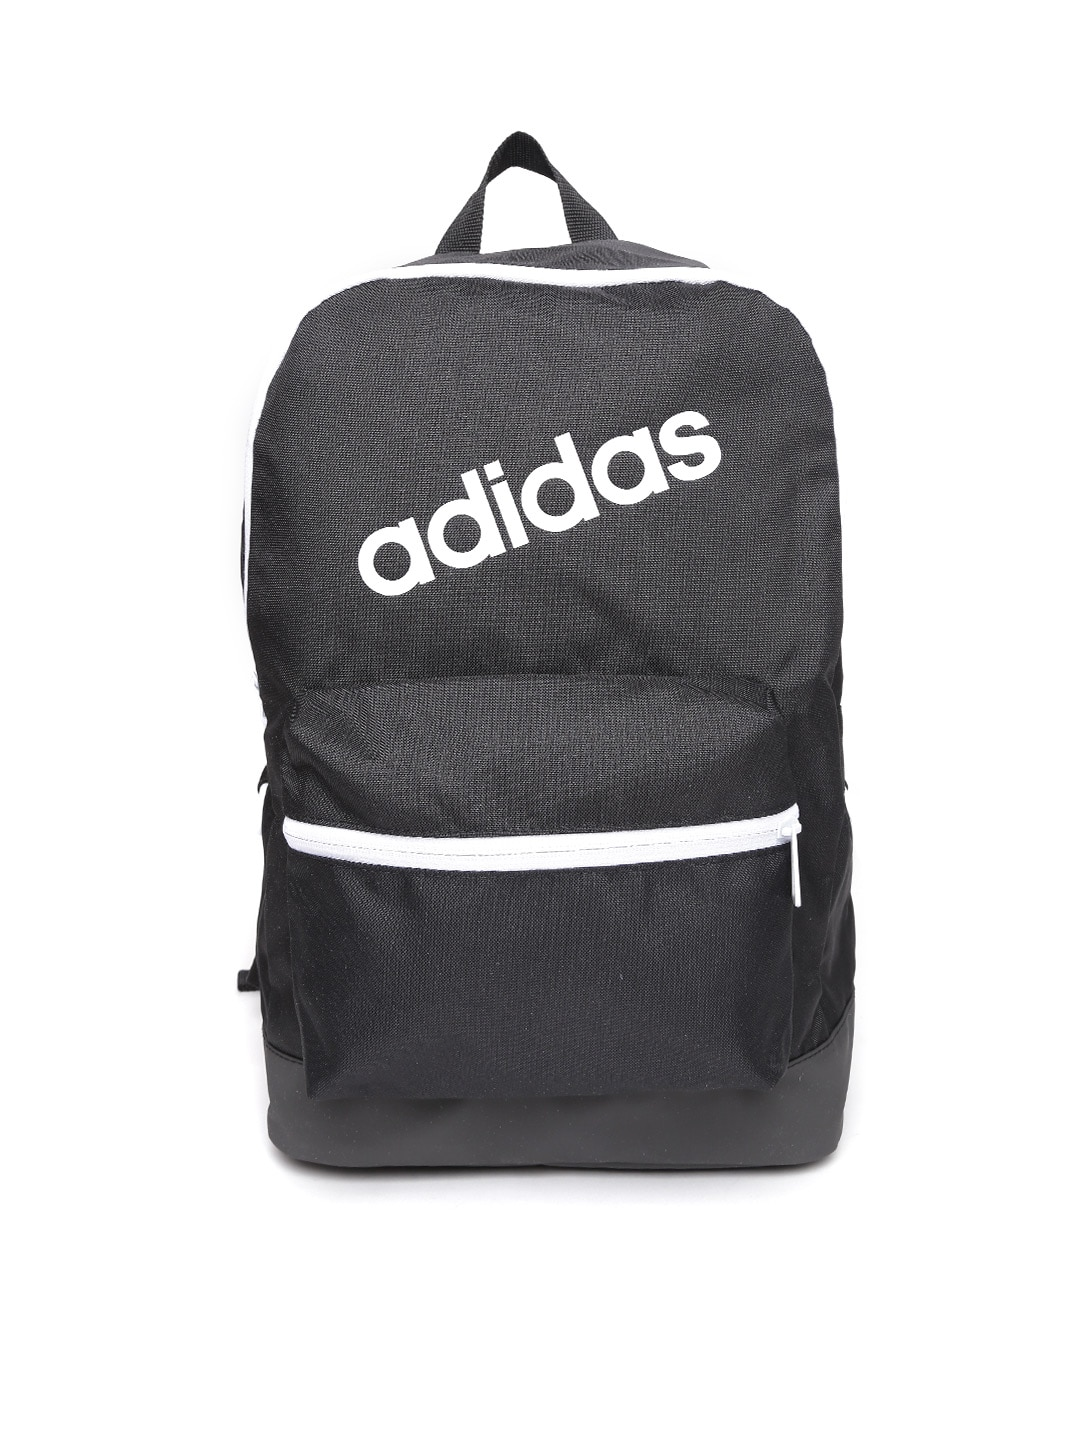 Adidas Black Backpacks Bags - Buy Adidas Black Backpacks Bags online in  India 71c82b5531fd5